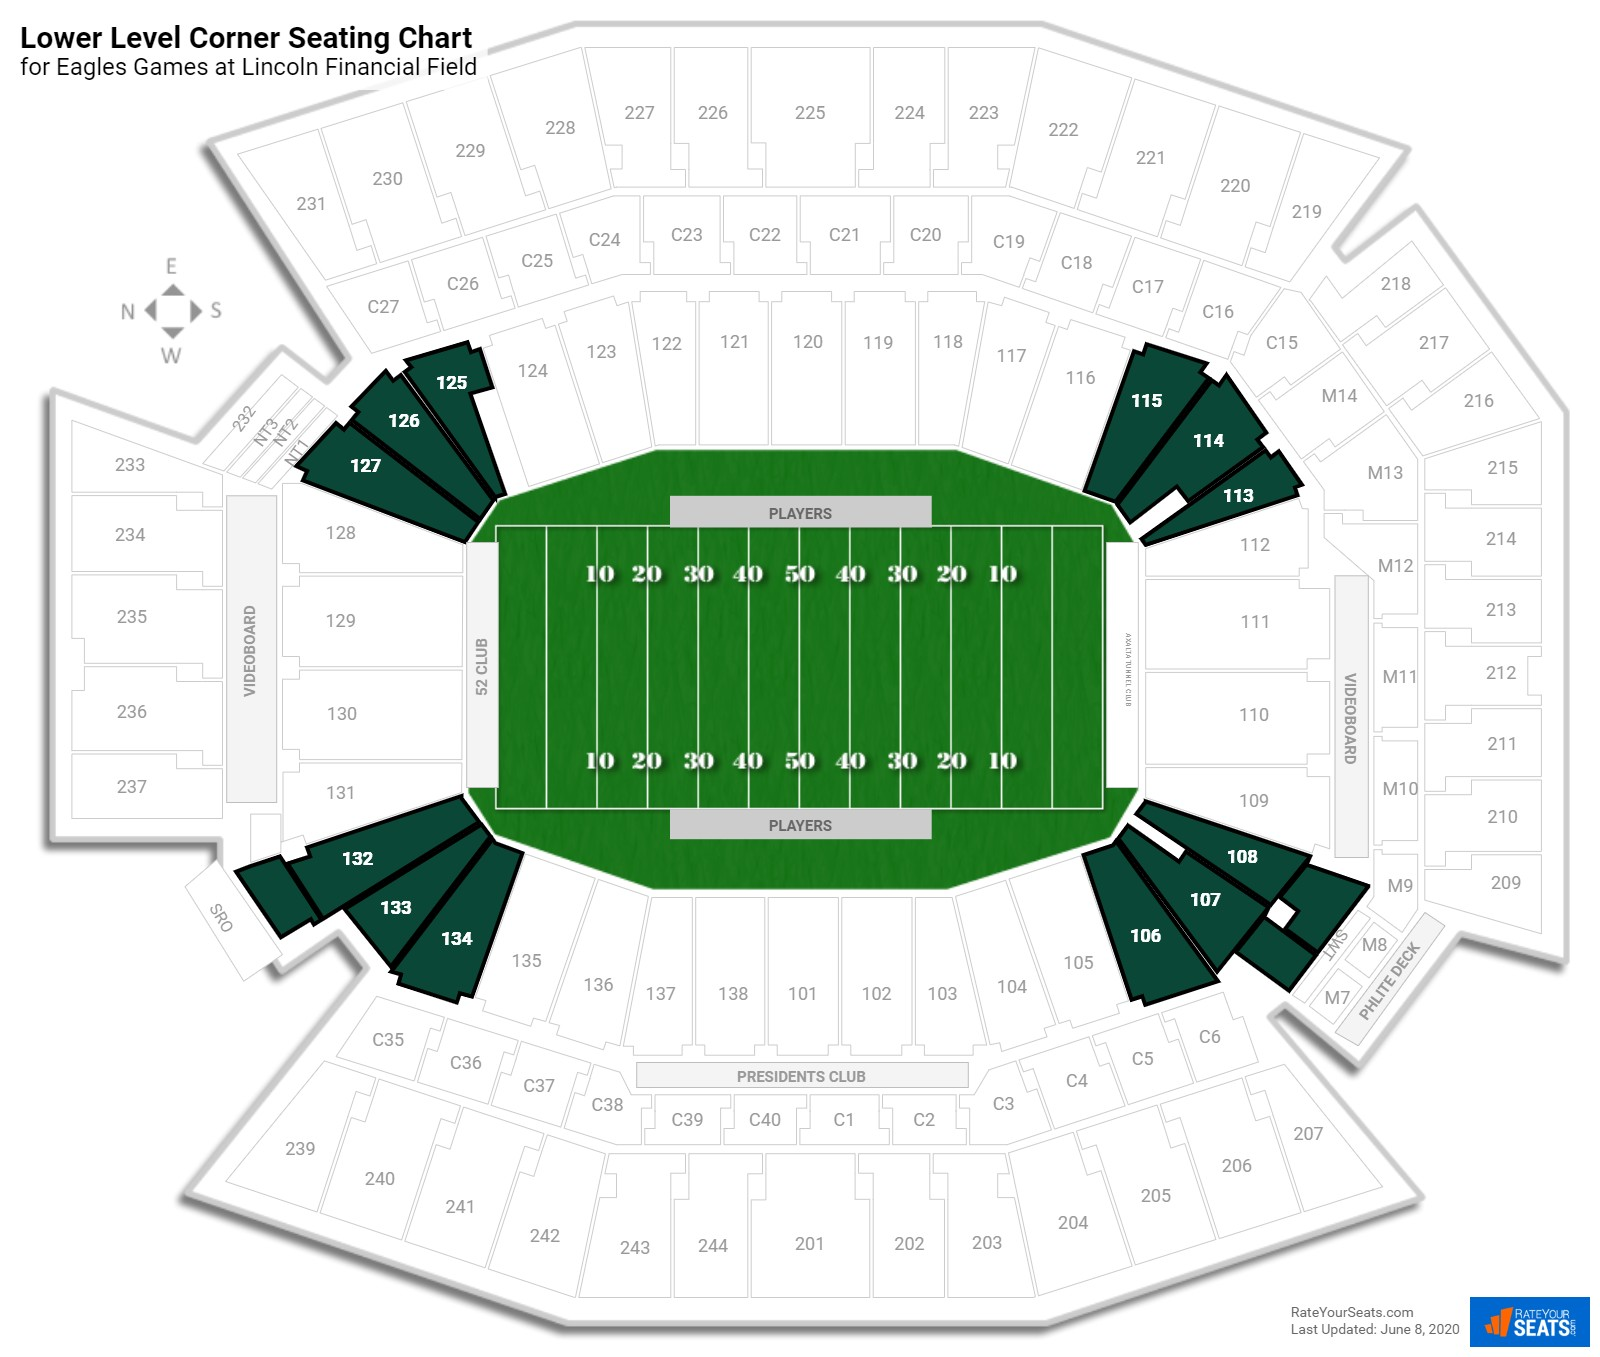 Lincoln Financial Field Lower Level Corner seating chart